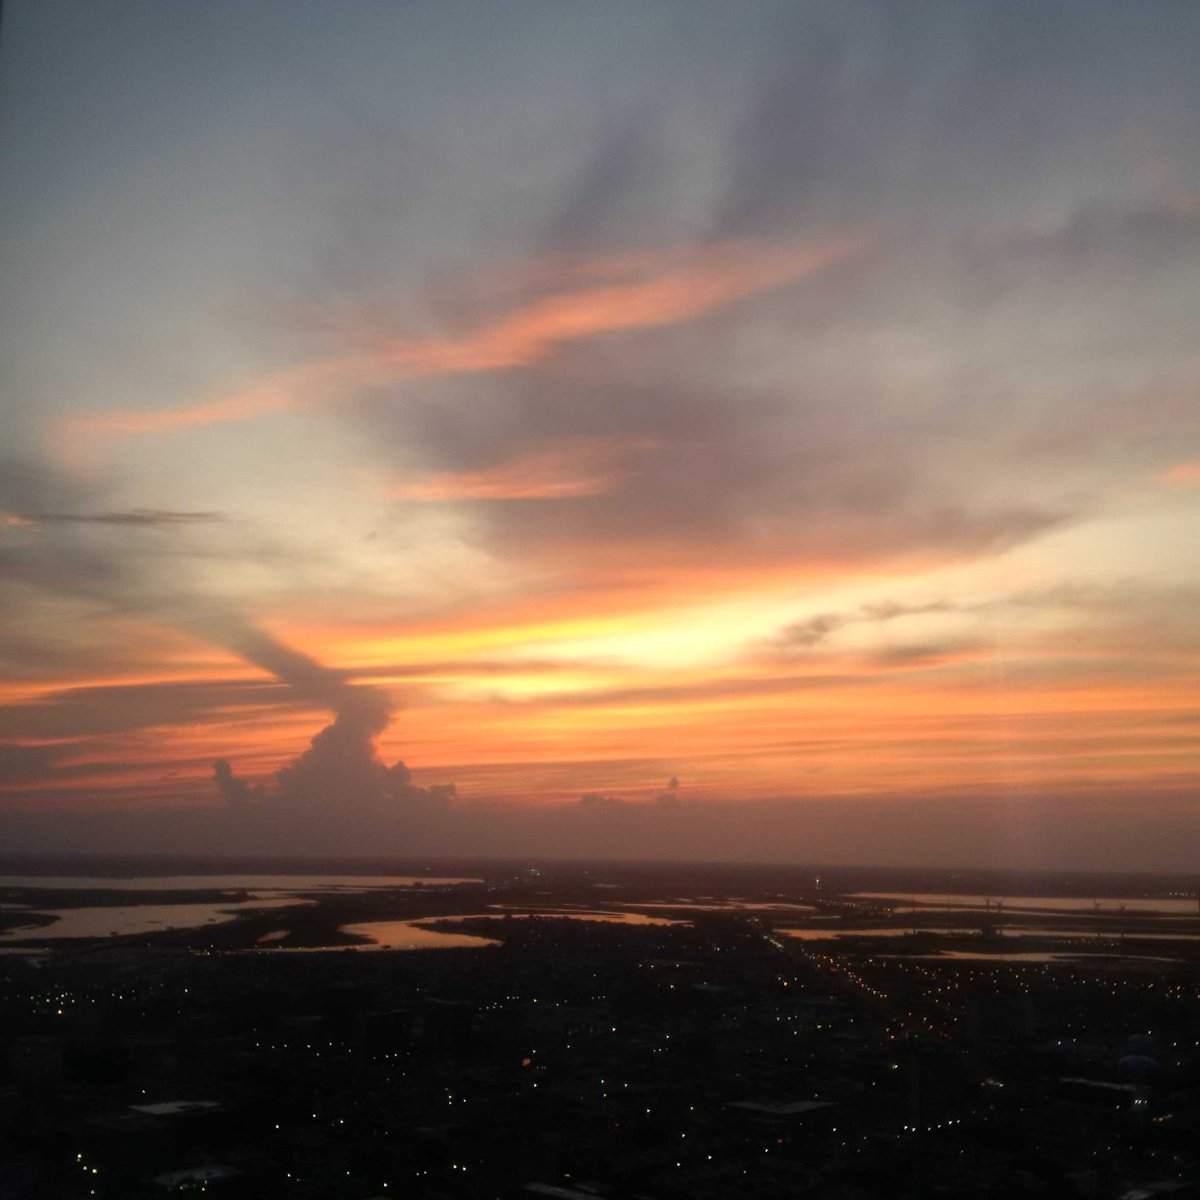 Look how pretty....sunset over Atlantic City. <br>http://pic.twitter.com/GaOBersuci